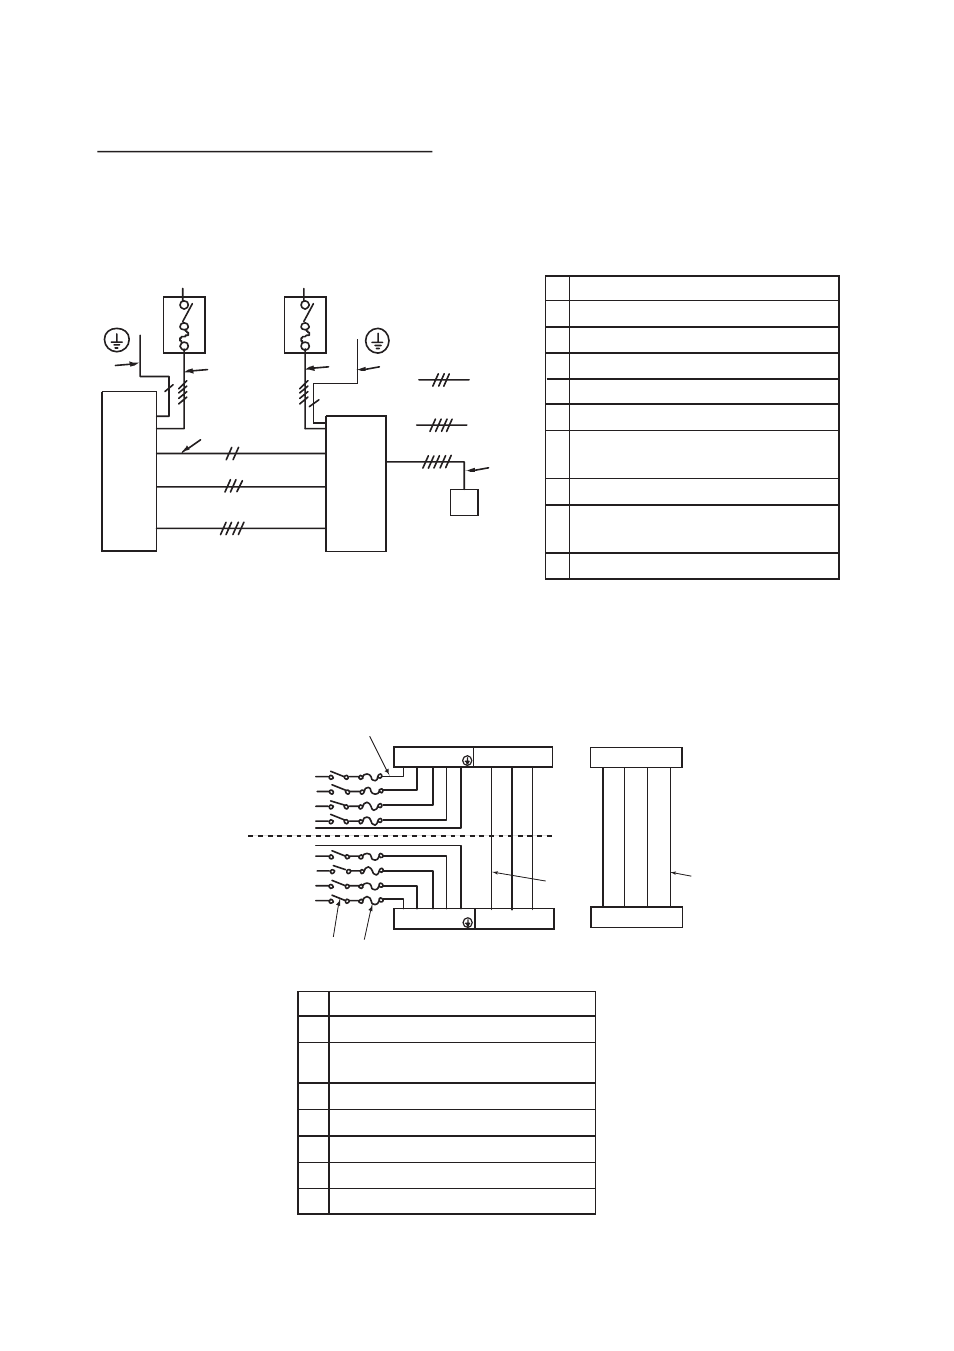 Method For Connecting Electric Wire Mitsubishi Pe 15myc Wiring Diagram User Manual Page 101 115